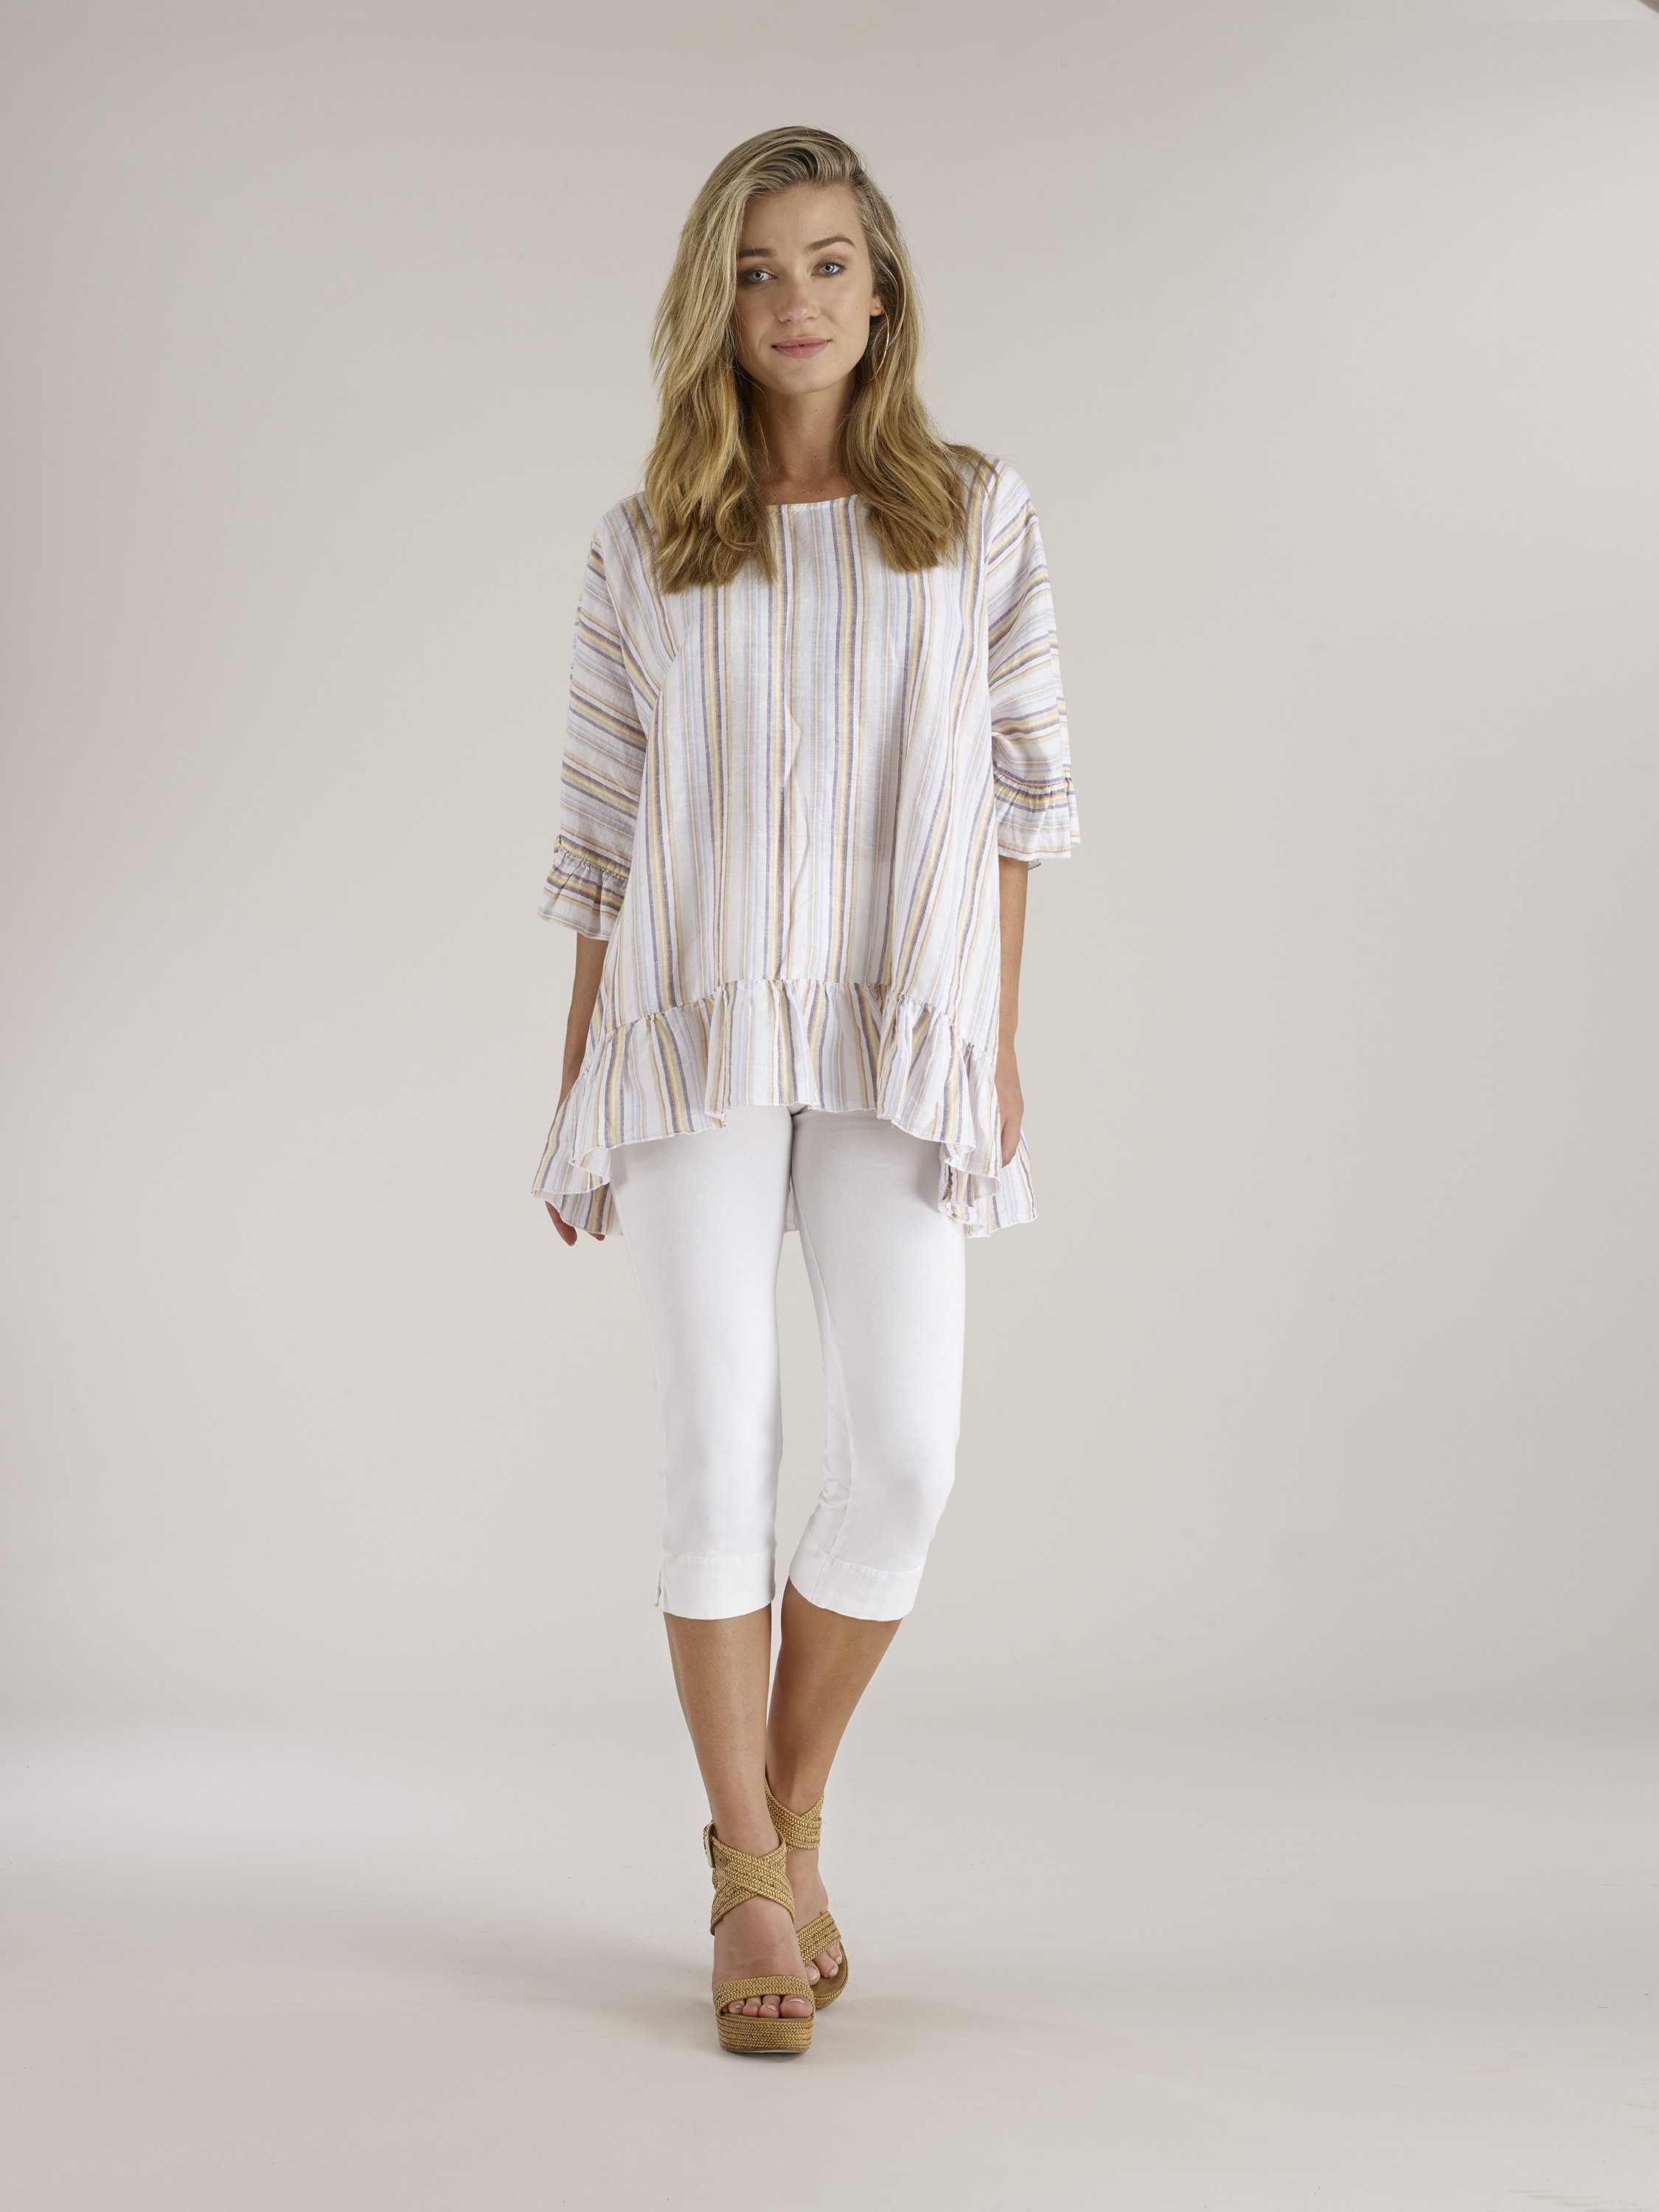 Luna Luz: Stripe High Low Ruffled Linen Tunic (More Colors, Ships Immed, 2 Left!)